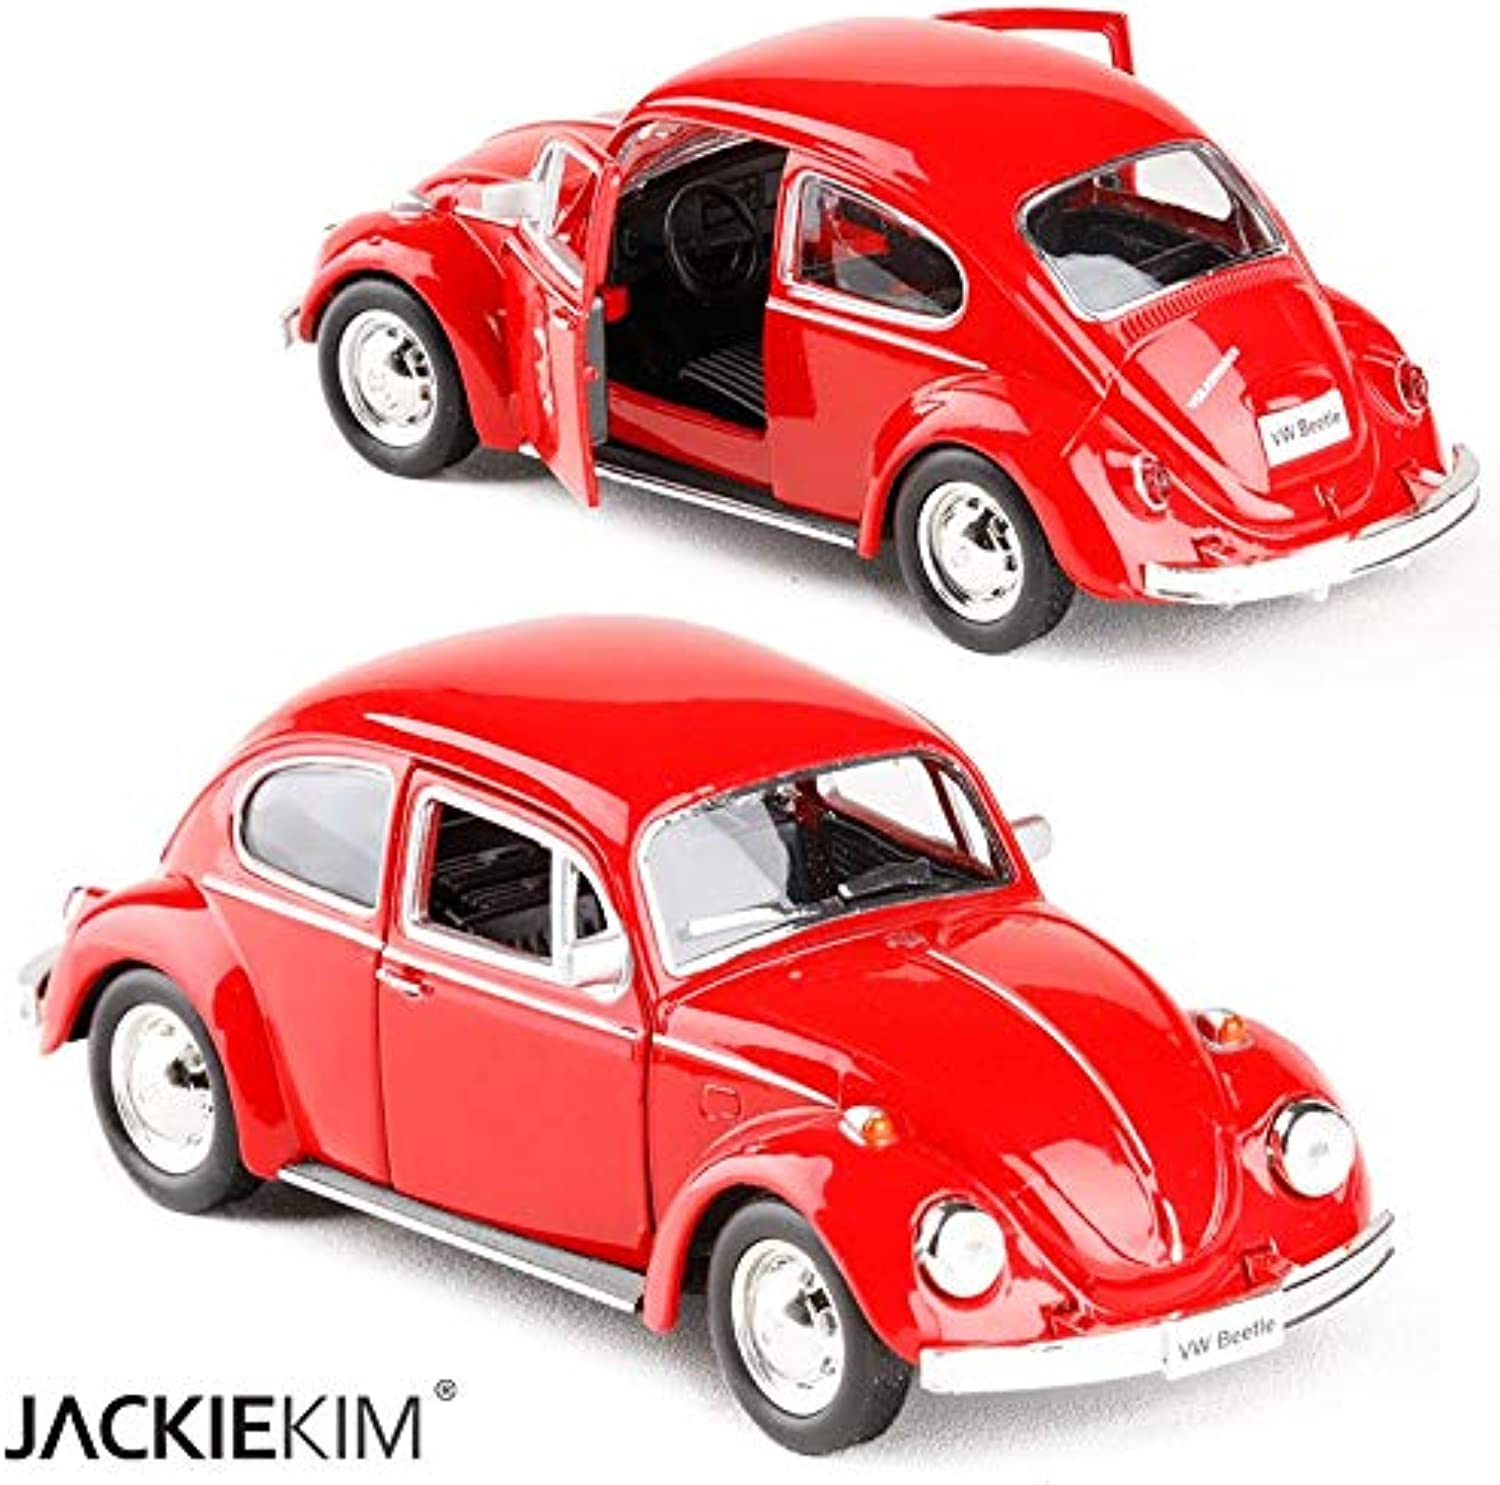 Generic RMZ City 1 32 1967 Volkswagen Old Beetle Alloy Car Model with Pull Back The Door Can Opened for Kids Toy Gifts 5